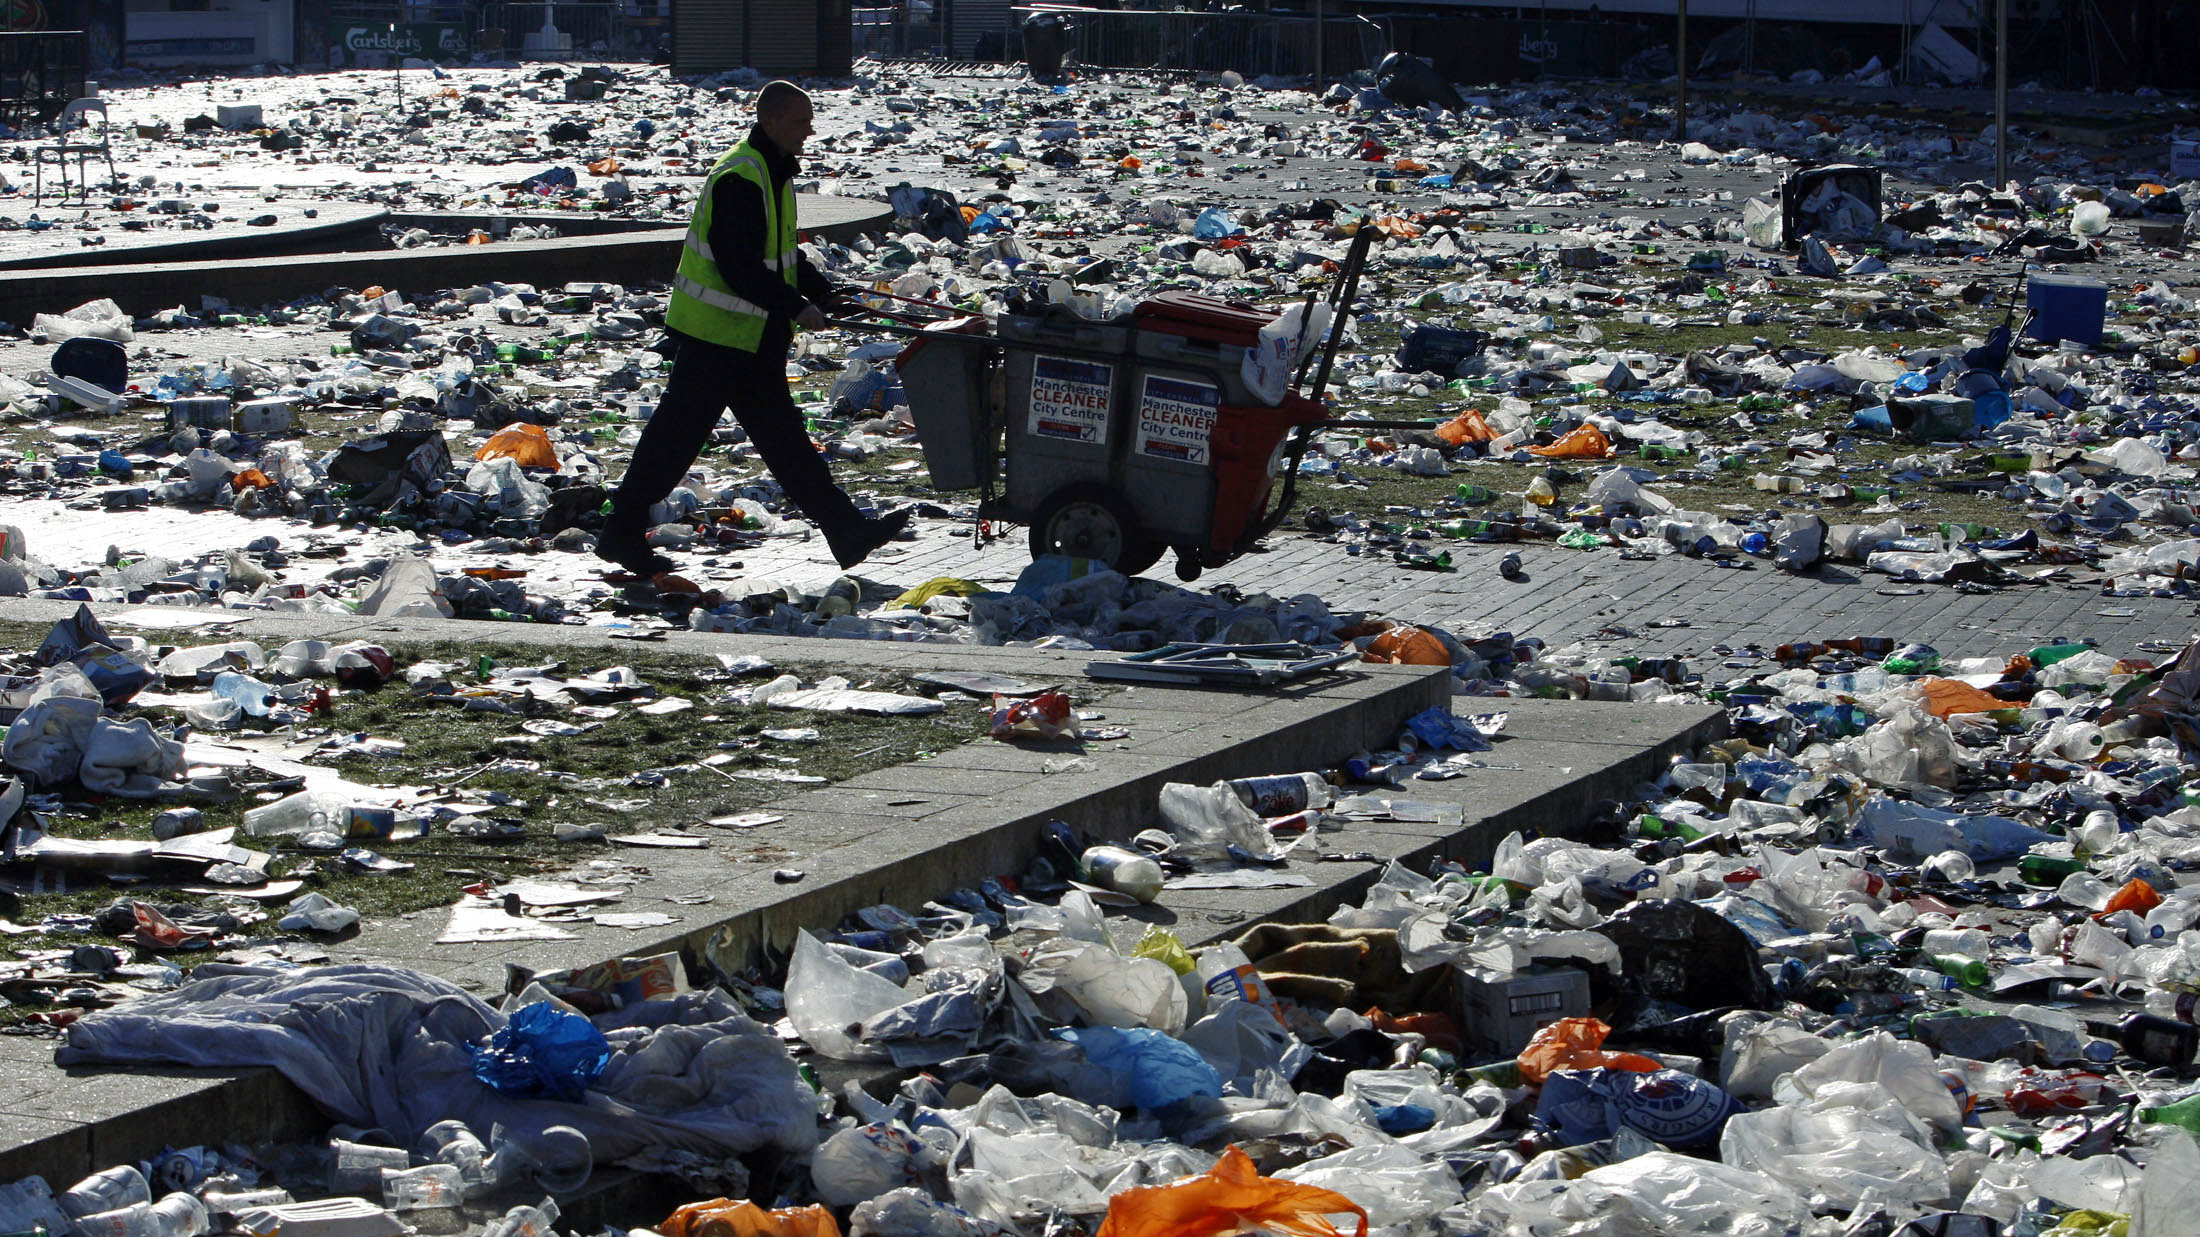 A street cleaner walks through rubbish in Piccadilly Gardens, after the Rangers lost to Zenith St. Petersburg during their UEFA Cup final in central Manchester, northern England, May 15, 2008.